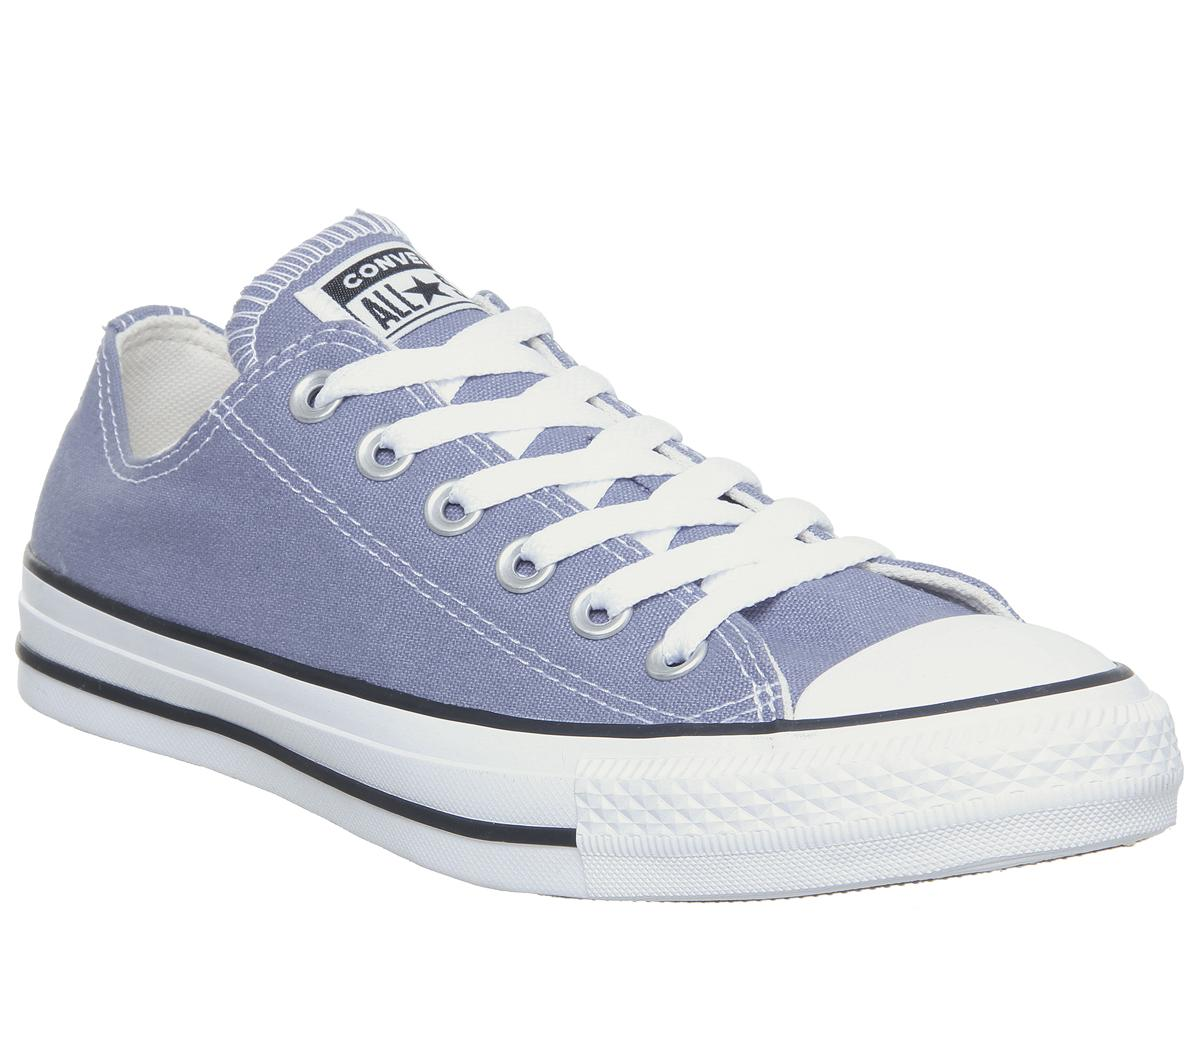 Mens Converse Converse All Star Low Stellar Indigo Uk Size 6